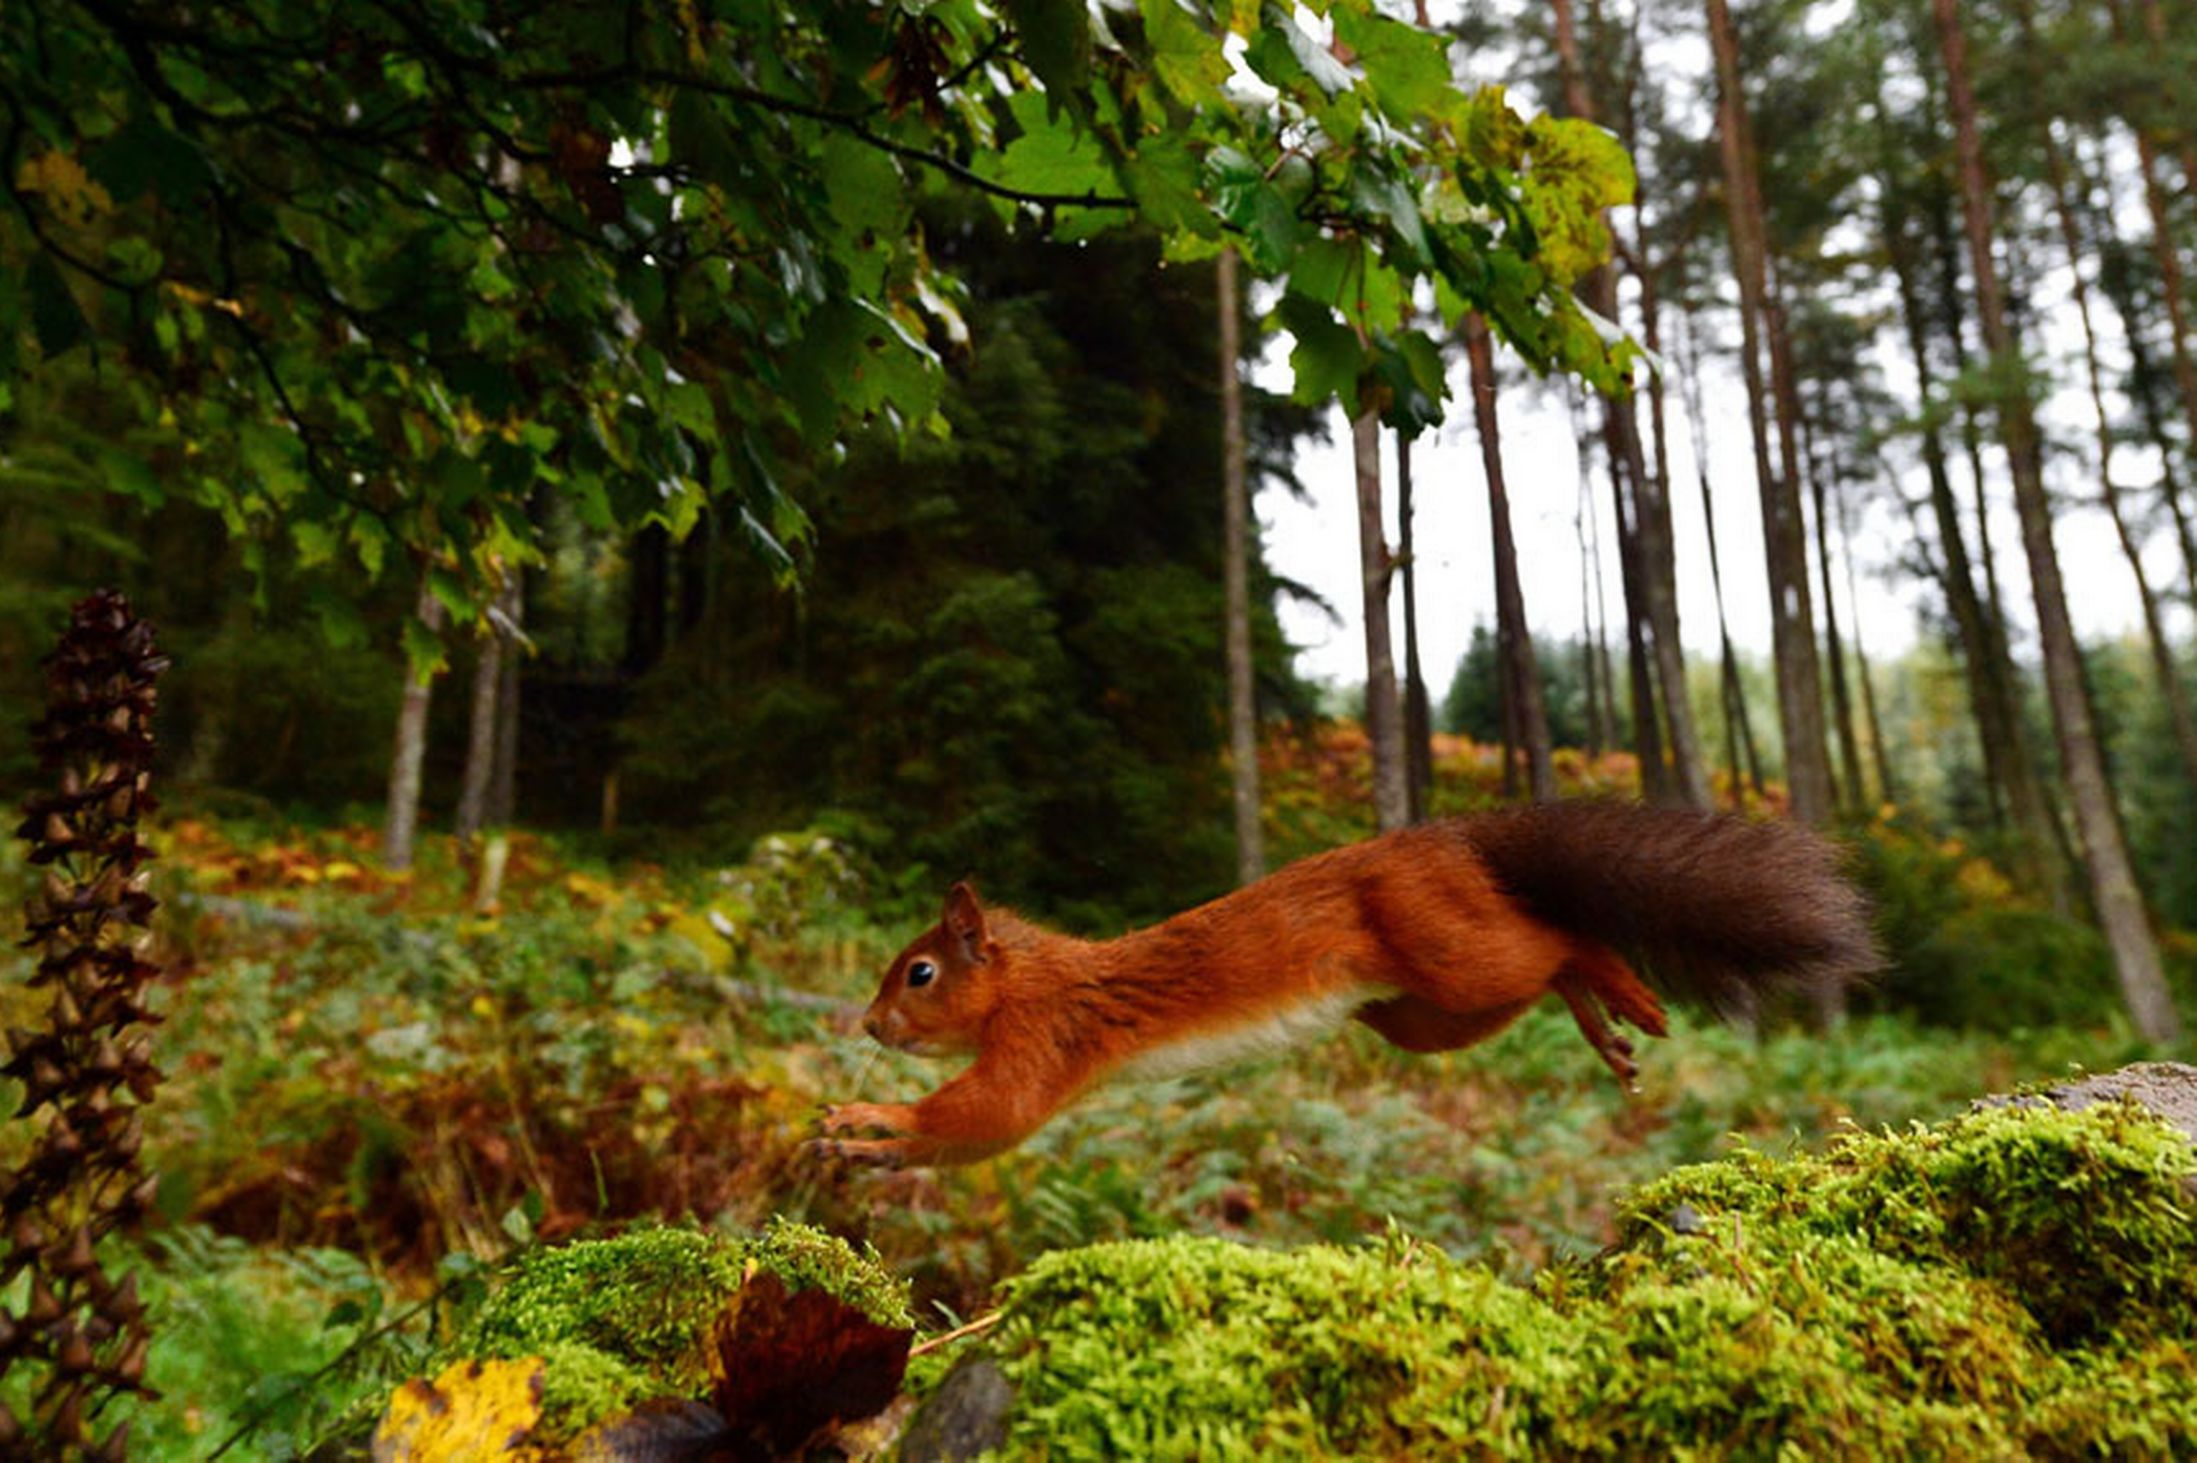 A-Red-Squirrel-darts-along-a-stone-wall-in-Kielder-Forest-Northumberland-21st-October-2641160